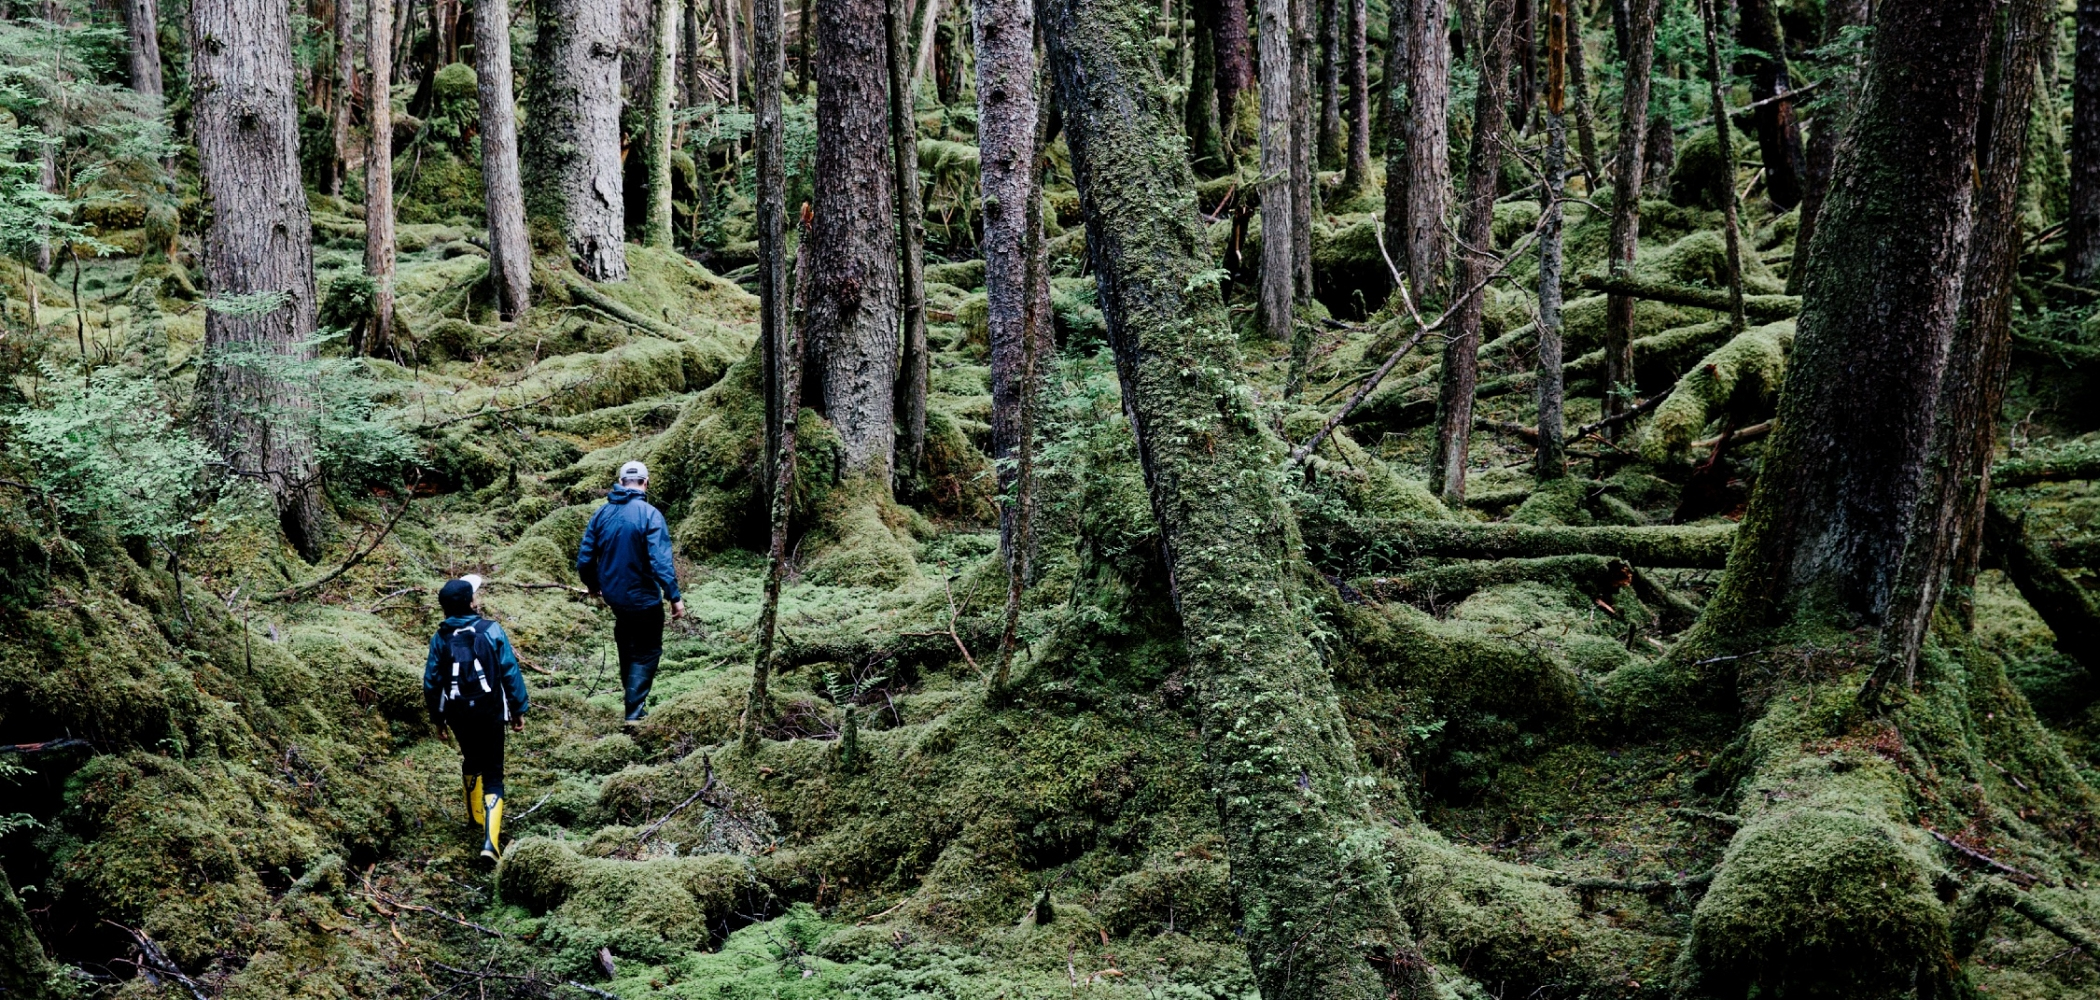 Two hikers hiking through tall trees in the Haida Gwaii